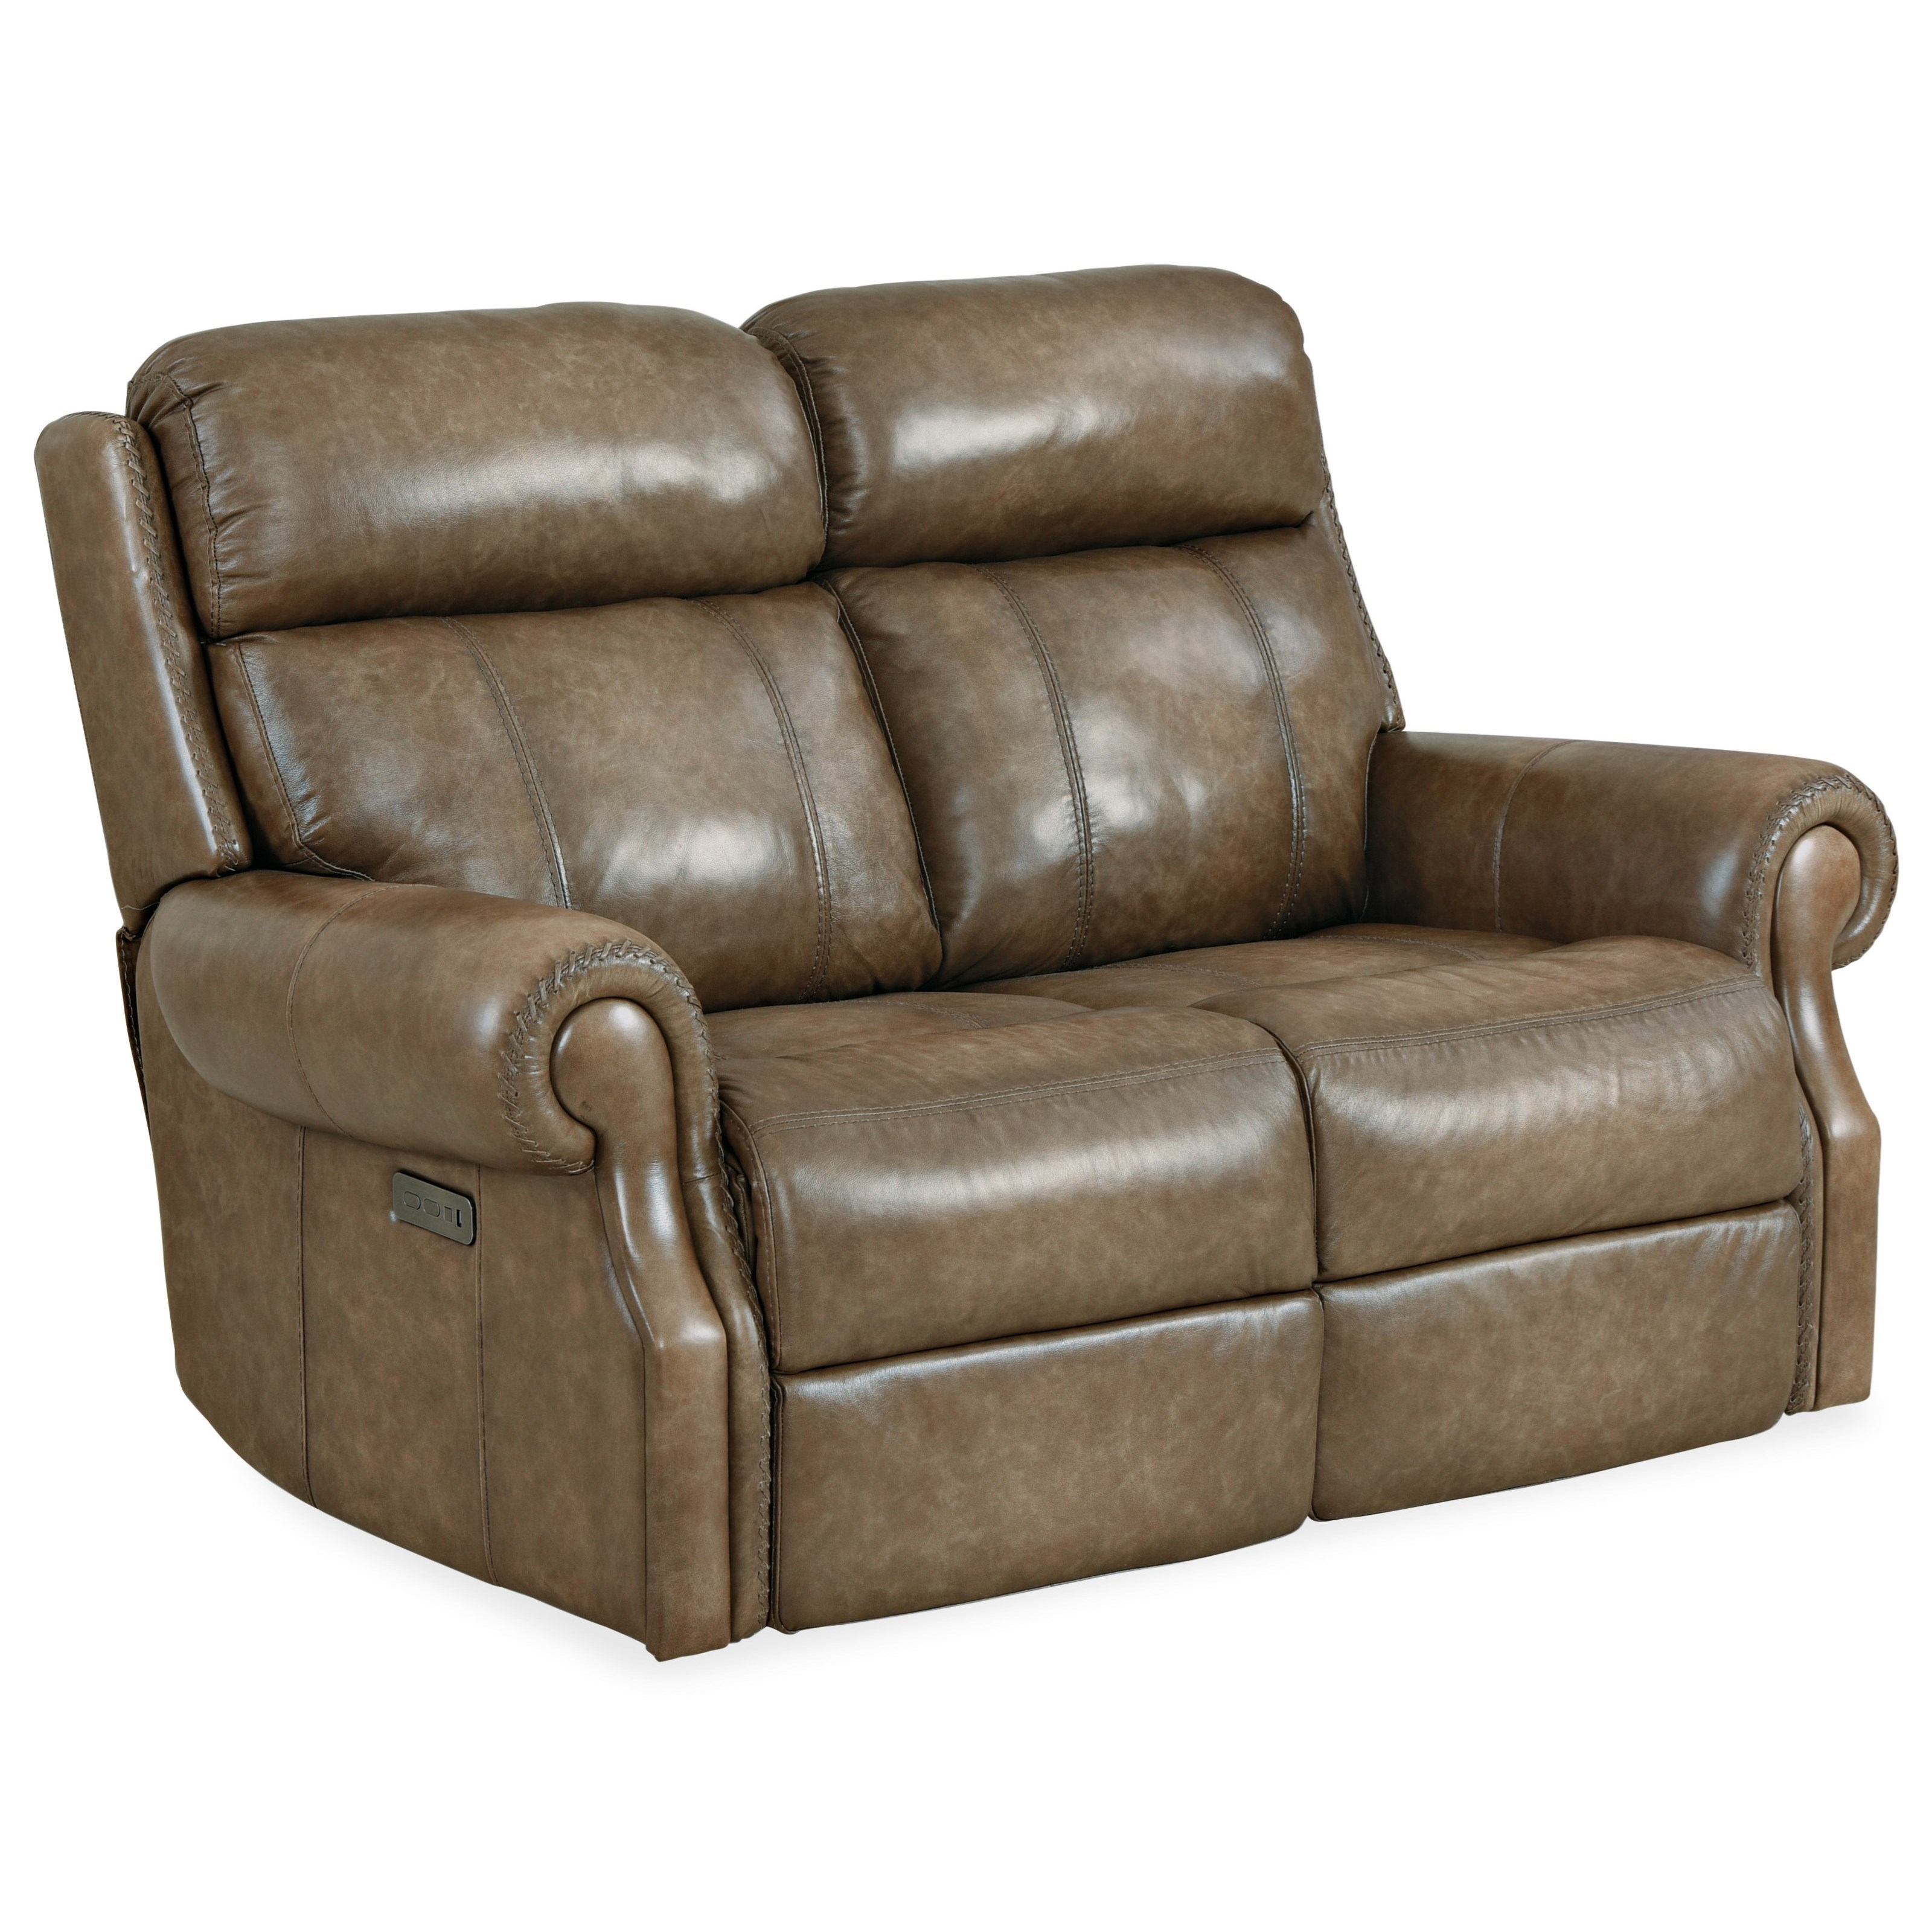 Brooks Power Loveseat w/ Power Headrest by Hooker Furniture at Baer's Furniture